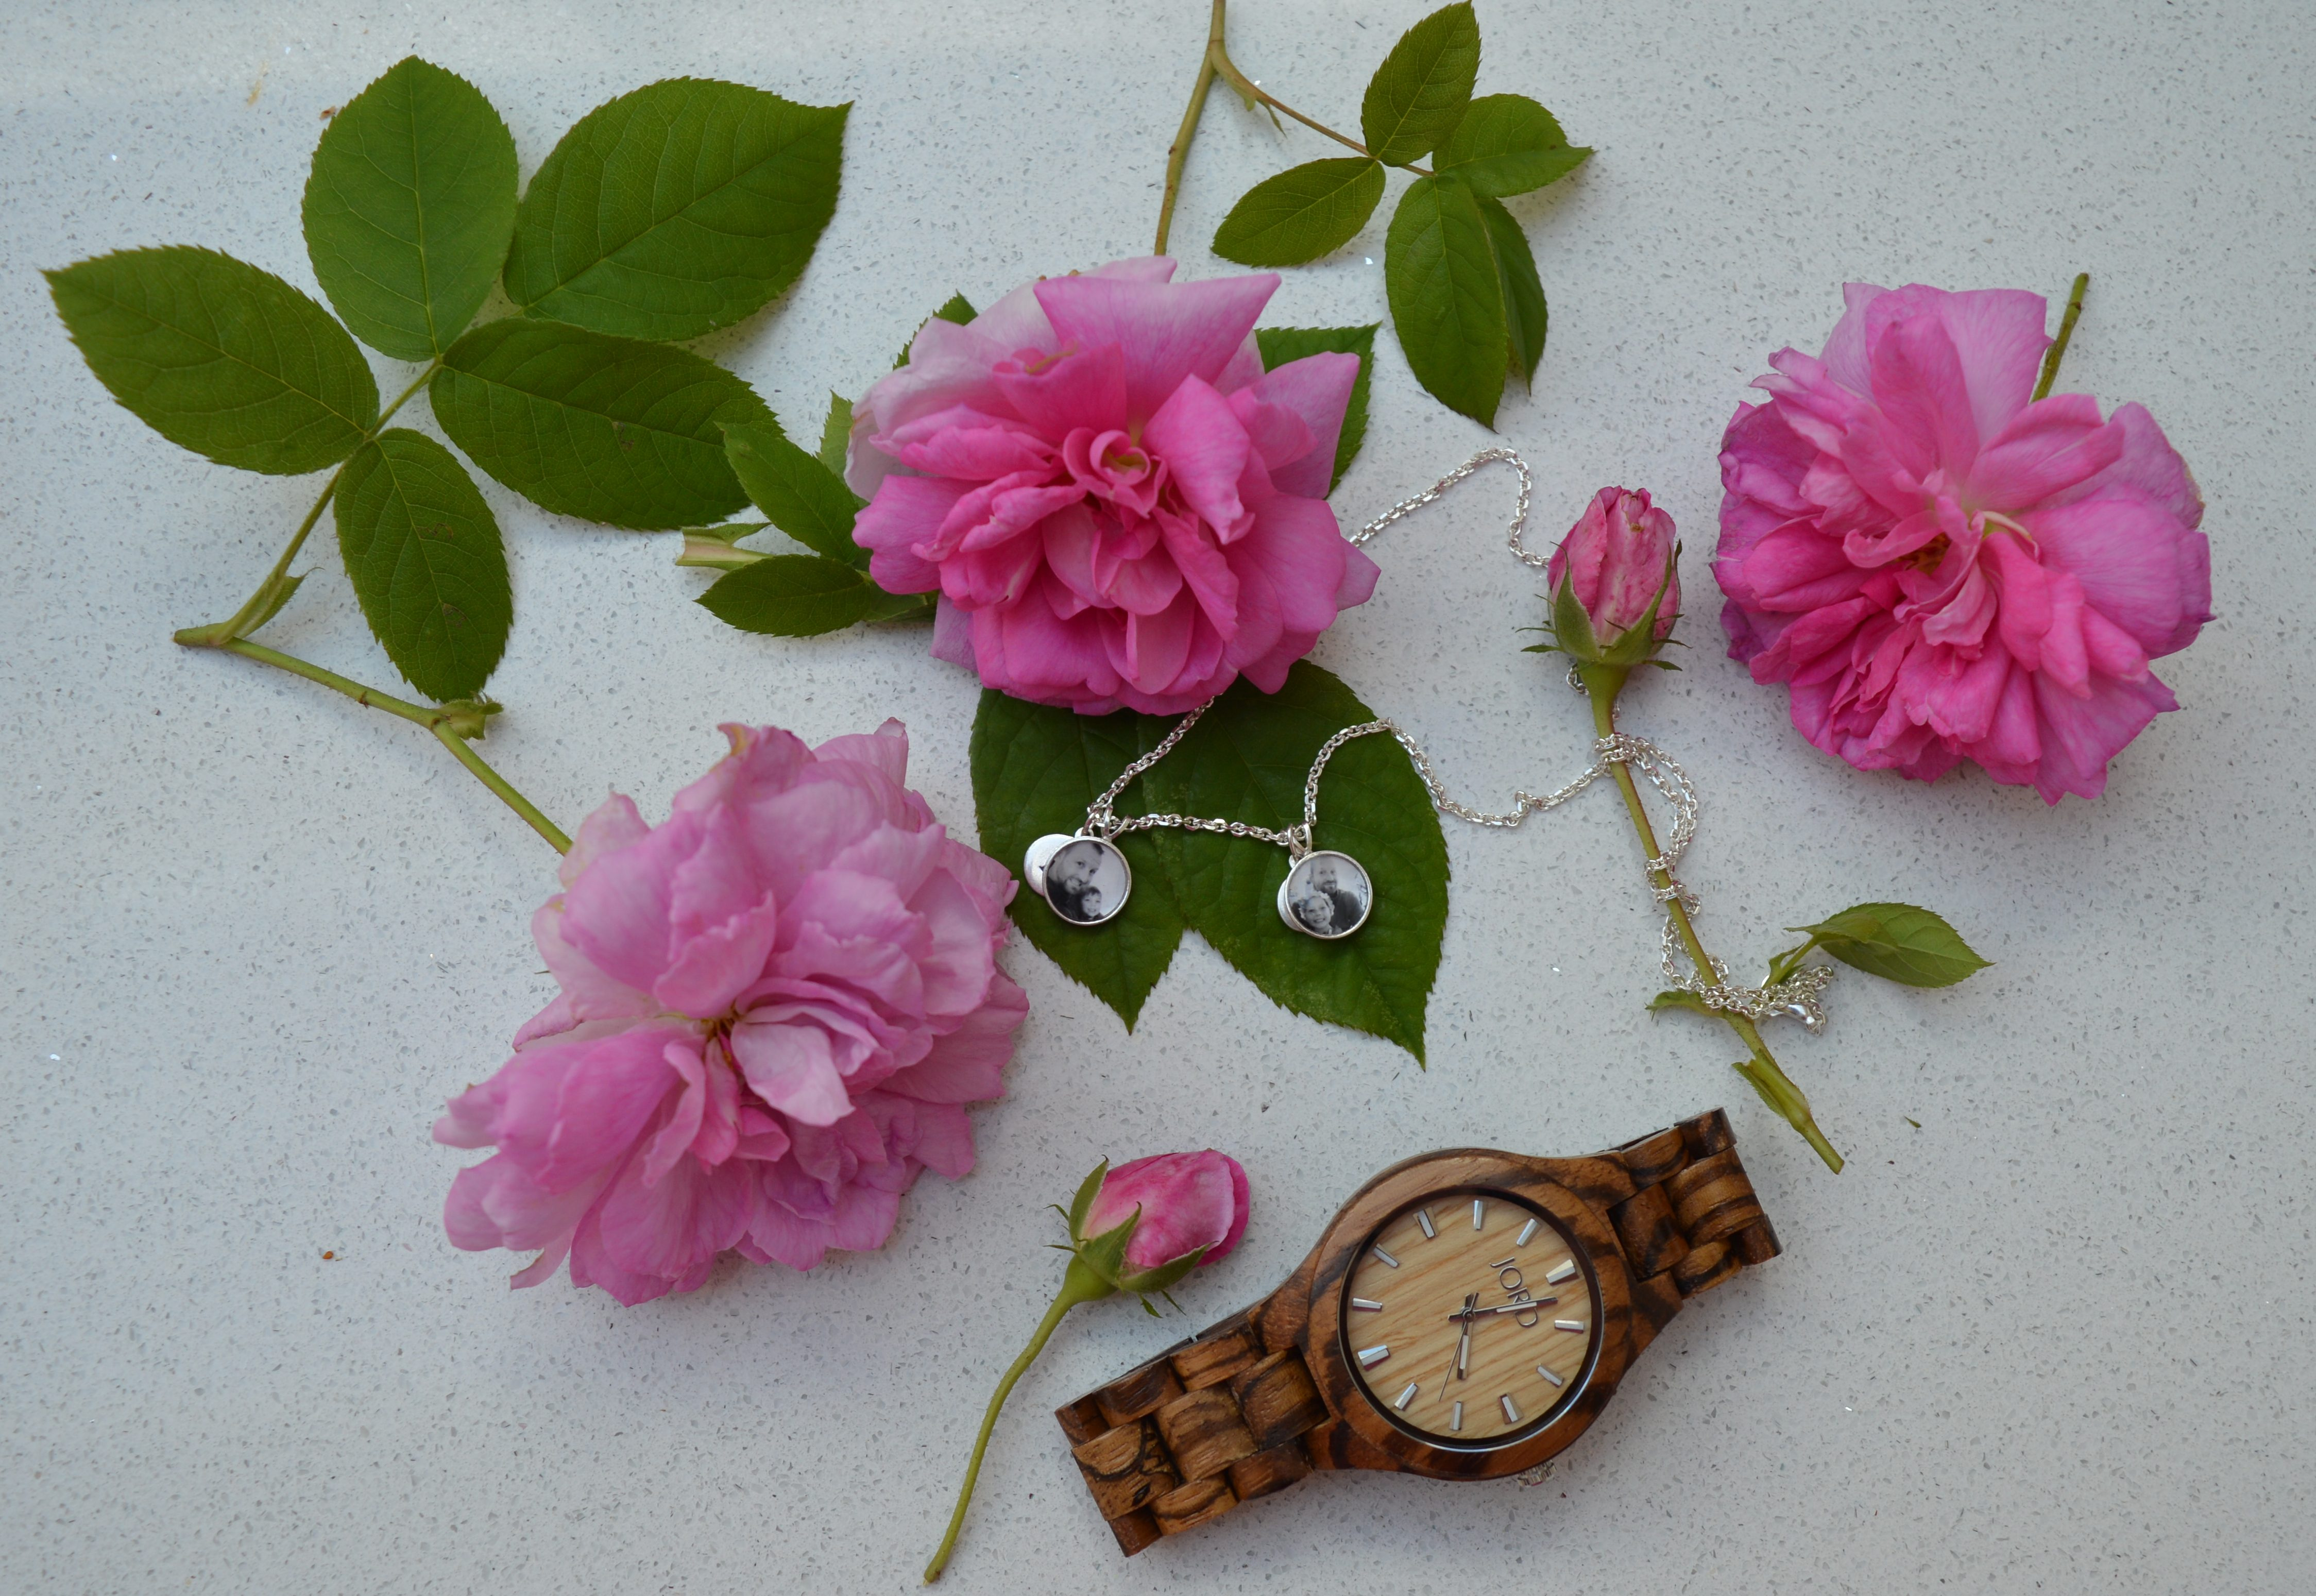 A beautiful shot from above of my photogem necklace with a watch lying among some big pink roses on a white background.